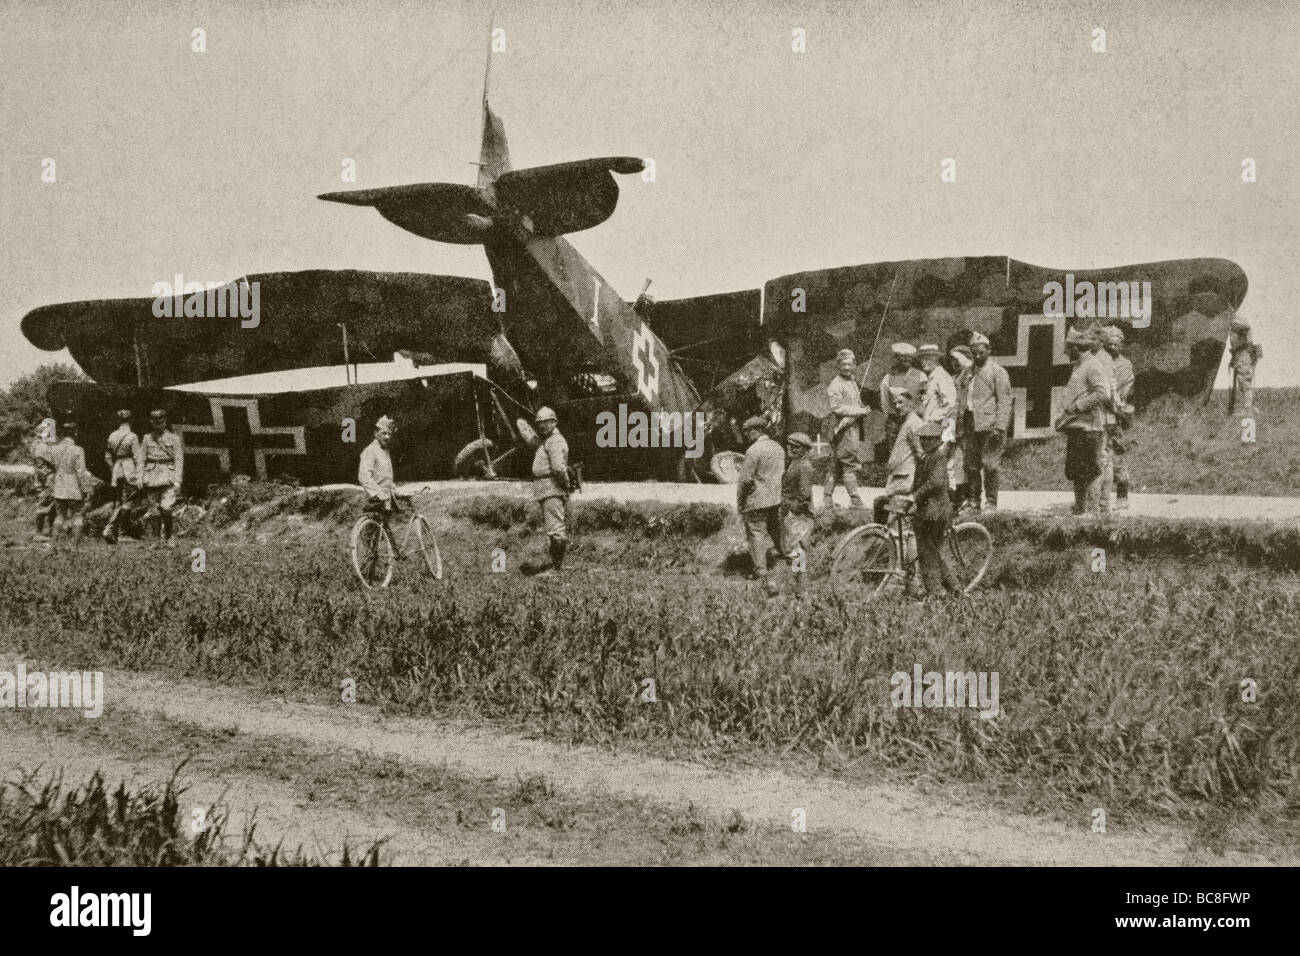 A German plane after being shot down over Oise. - Stock Image